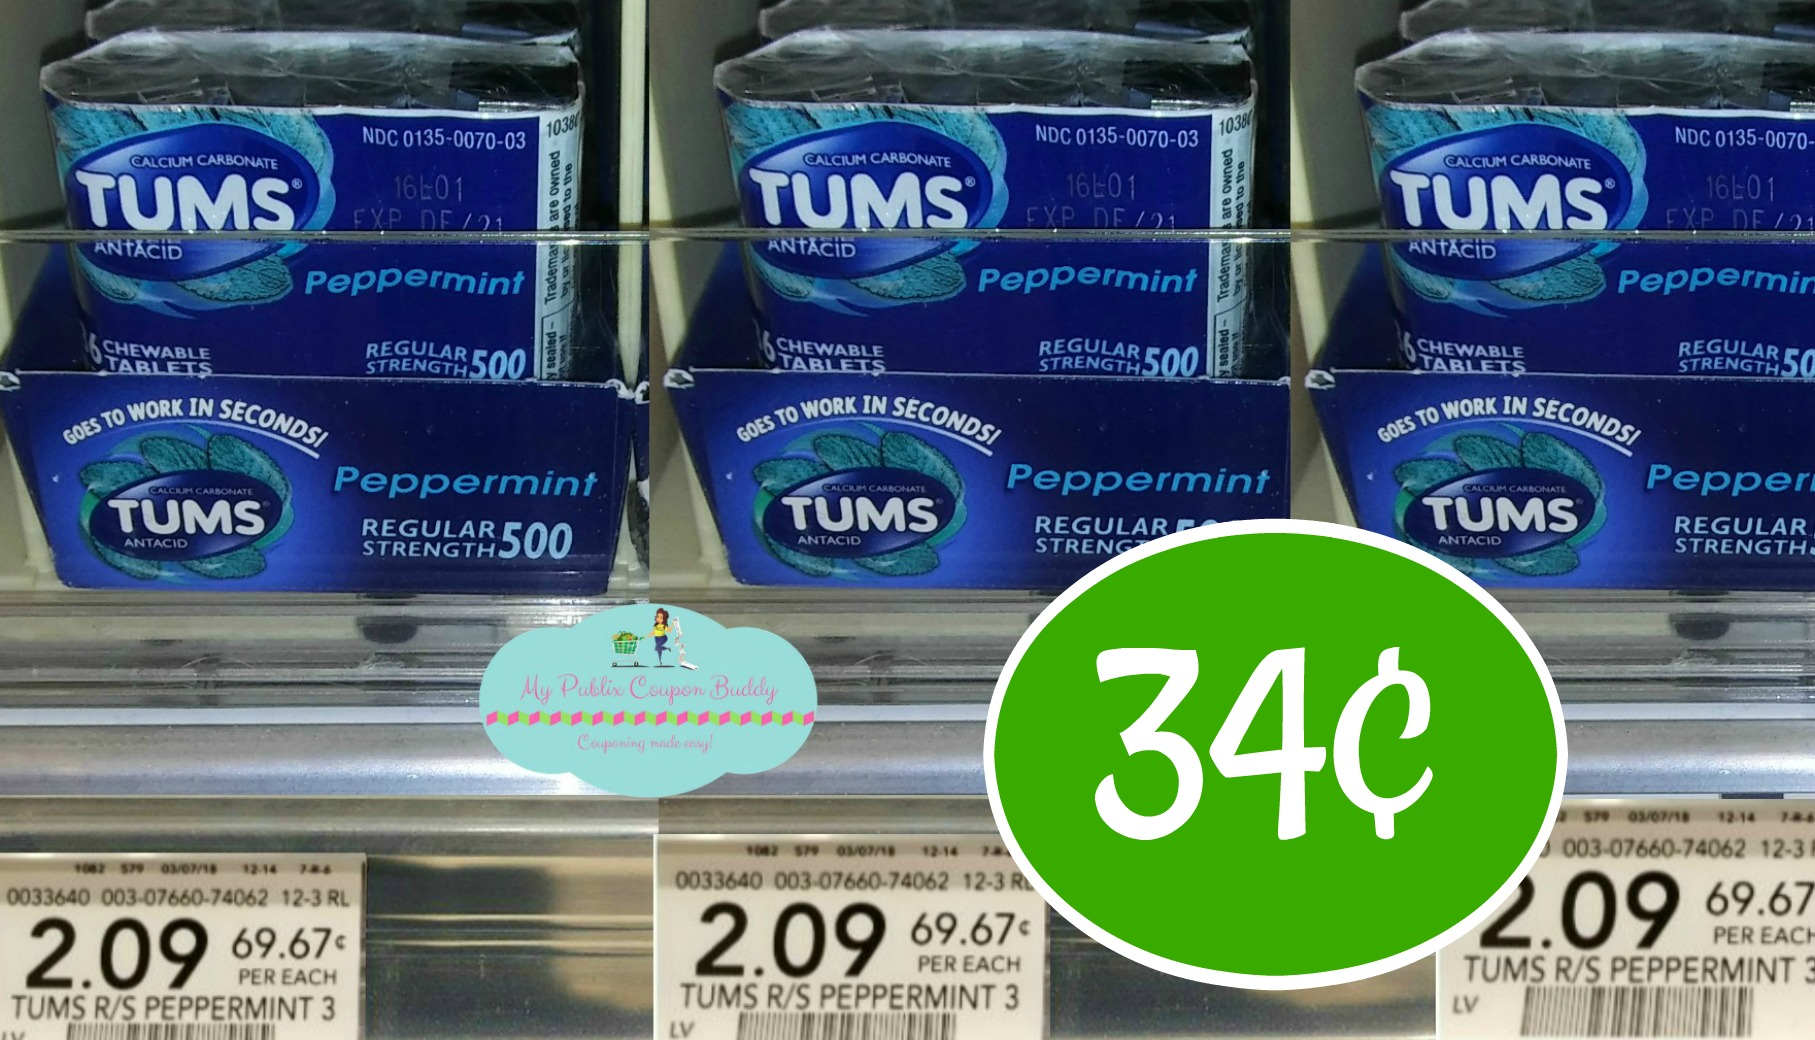 image regarding Tums Coupon Printable referred to as Tums 3pk 34¢ at Publix My Publix Coupon Mate